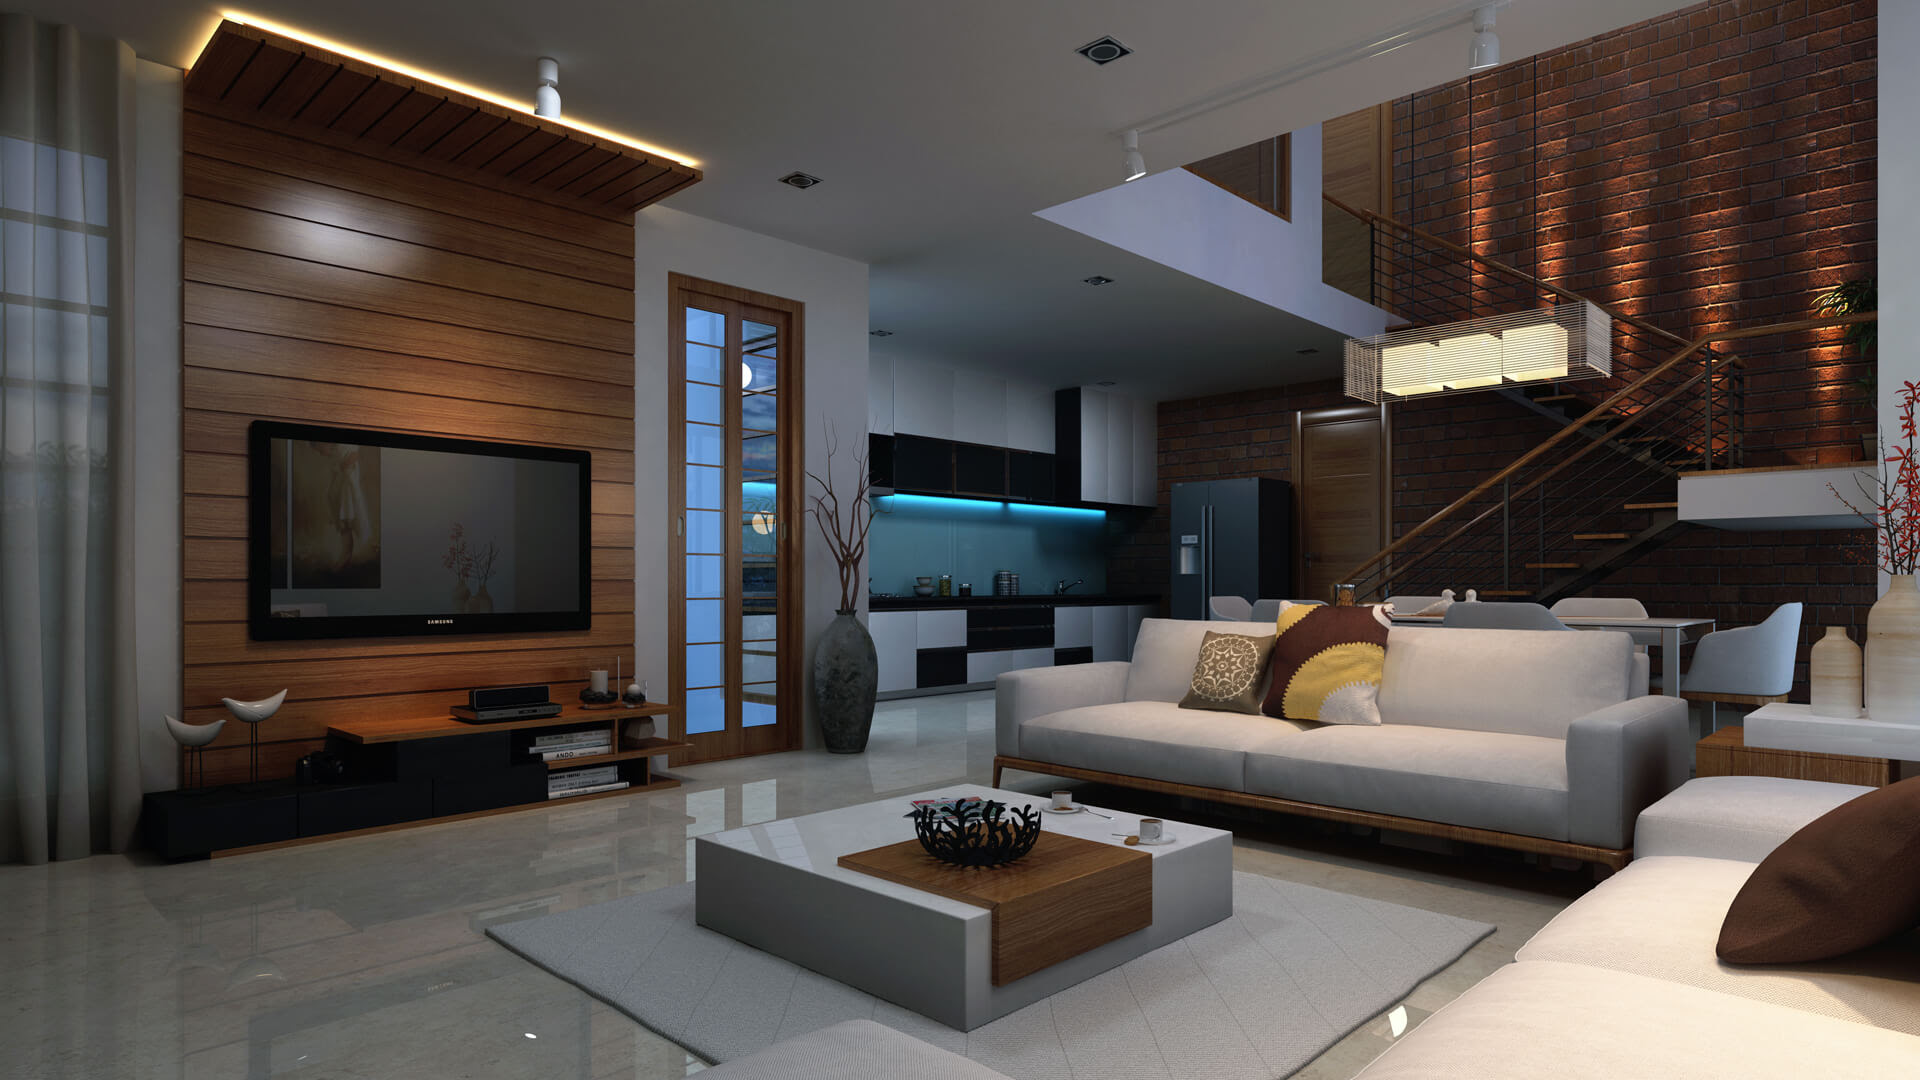 3d Home Bedroom Interior Design - 16 Awesome House Elevation Designs Kerala Home Design And Floor Plans